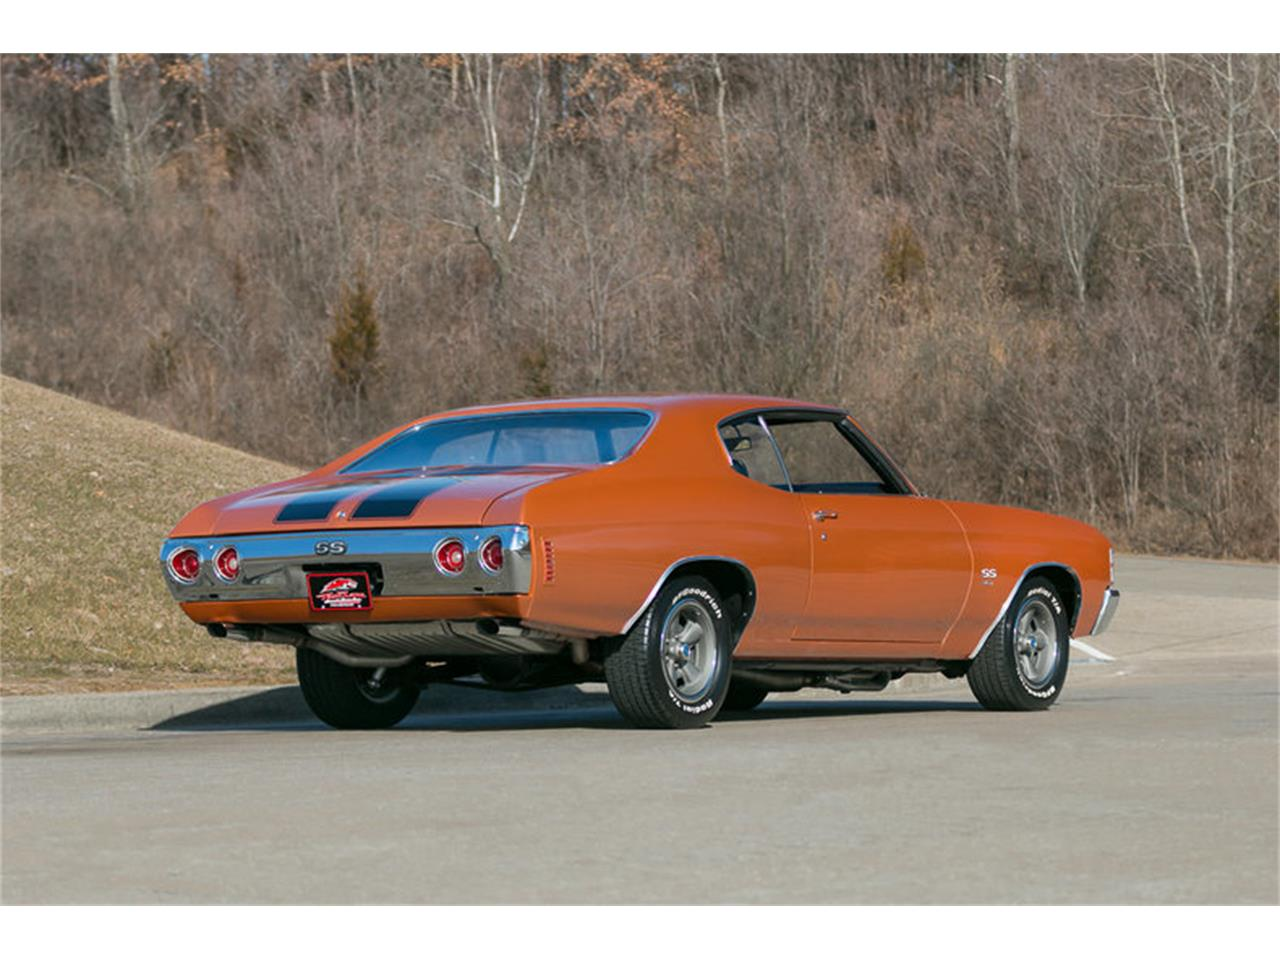 Large Picture of Classic '71 Chevrolet Chevelle located in St. Charles Missouri Offered by Fast Lane Classic Cars Inc. - KHEC